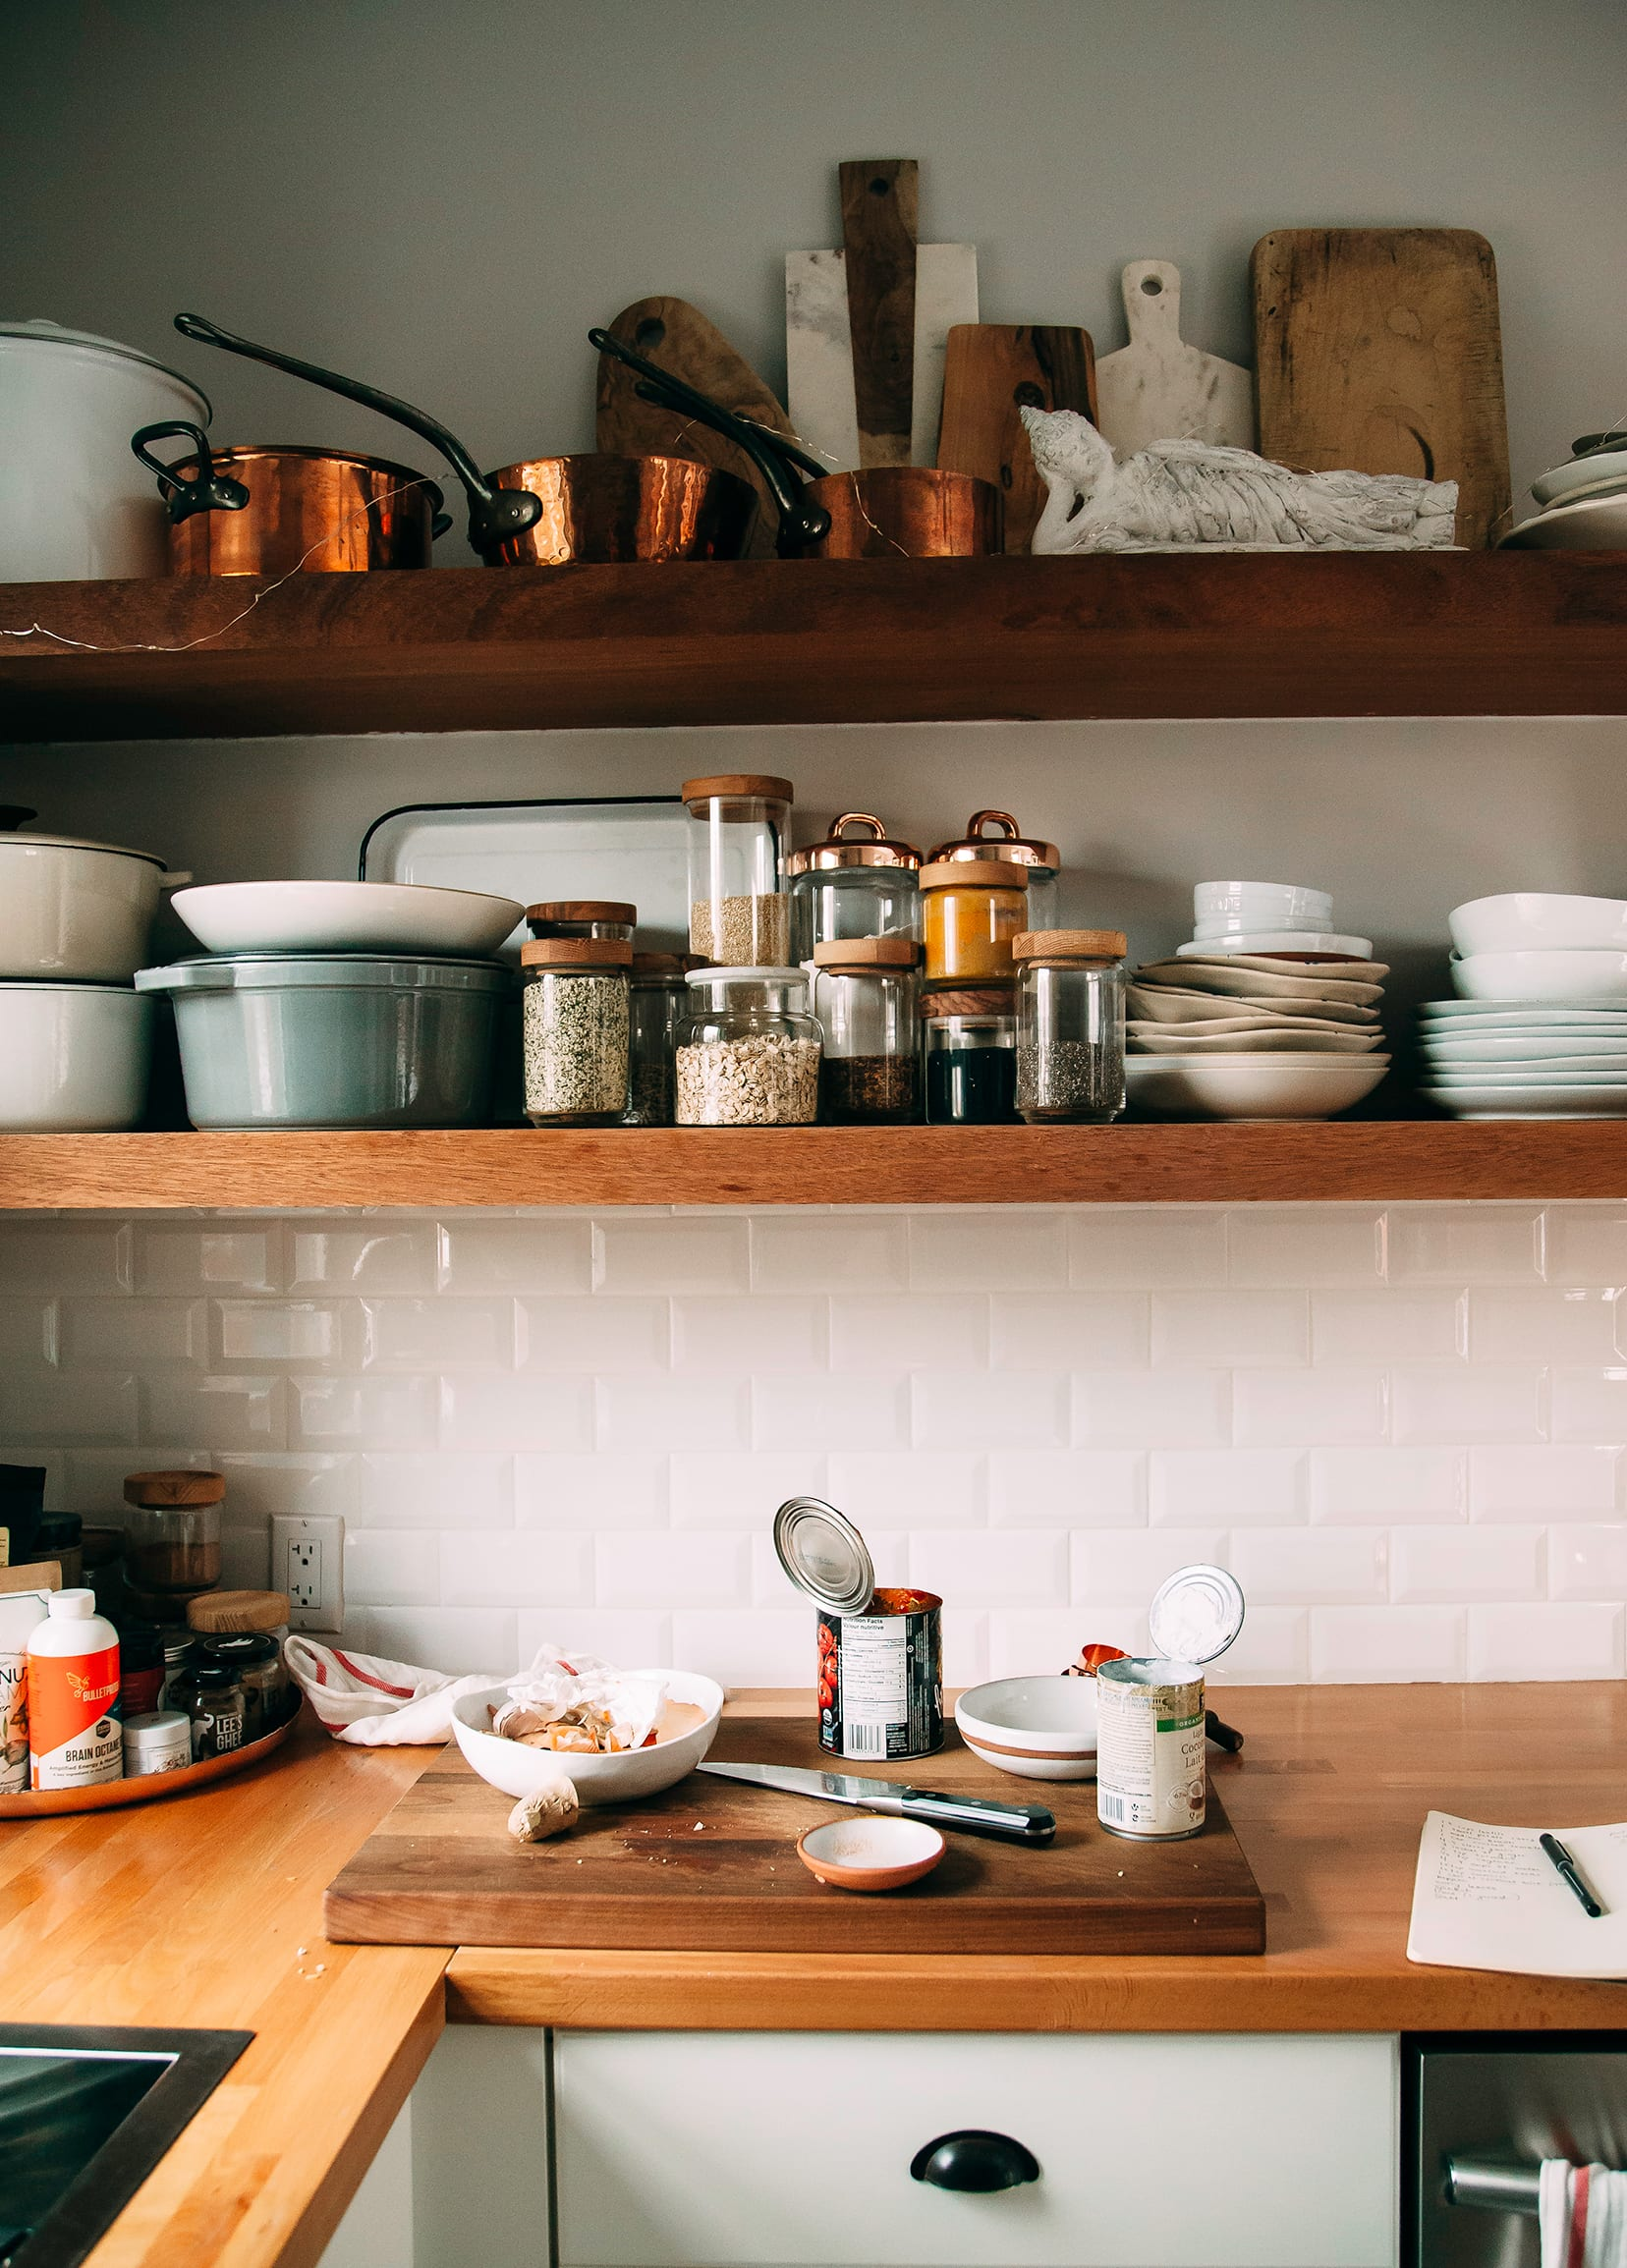 Image shows a kitchen scene with open shelving and canned ingredients open on the counter.